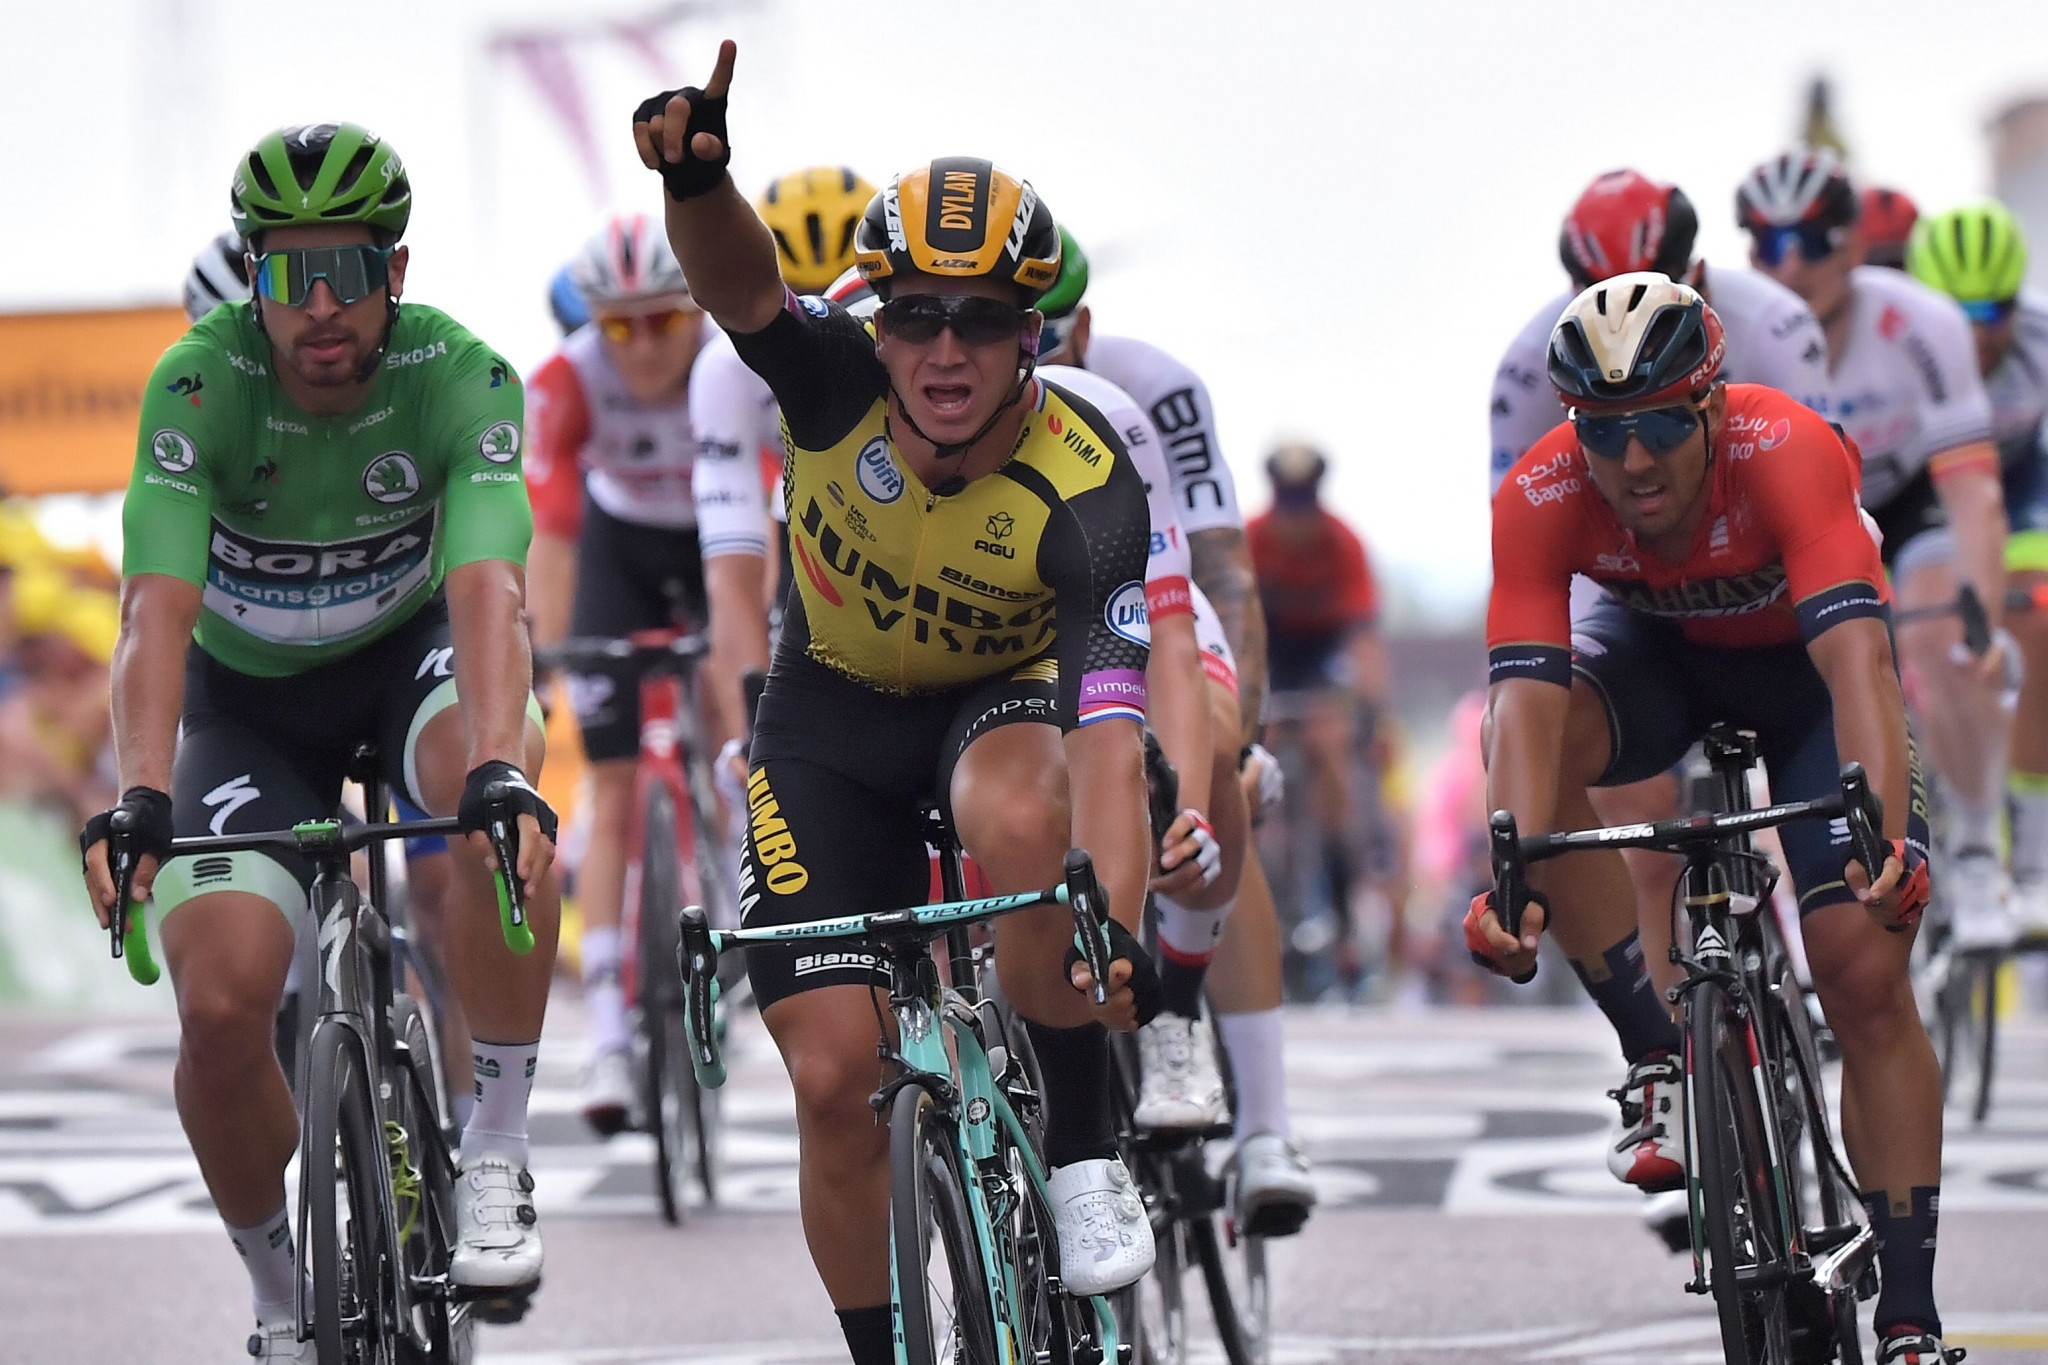 The Netherlands' Dylan Groenewegen won stage seven of the Tour de France after coming out on top in a dramatic sprint to the line ©Getty Images